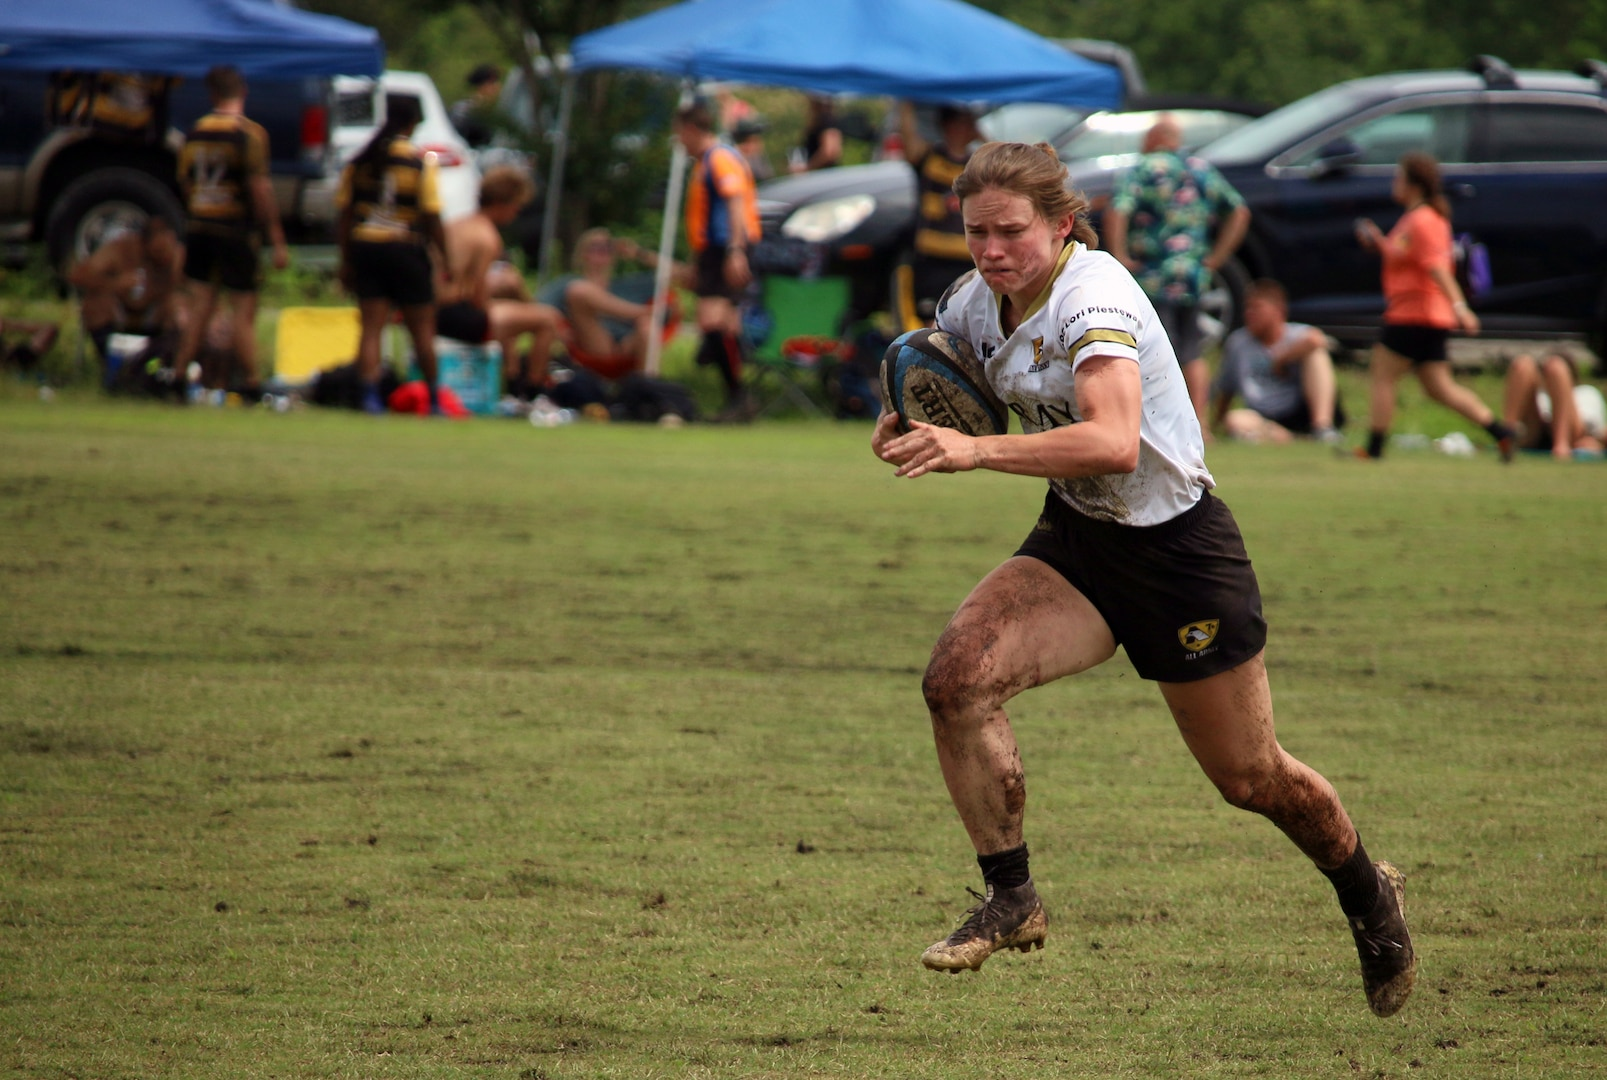 Army 2nd lt. Samantha Sullivan of Fort Carson, Colo. drives to the try zone against the Marine Corps during the 2021 Armed Forces Rugby Championship held in conjunction with the 2021 Cape Fear Rugby Sevens Tournament, held from 24-28 June.  Service members from the Army, Marine Corps, Navy, Air Force (with Space Force personnel) and Coast Guard battle it out for gold.  (Department of Defense Photo, Released)